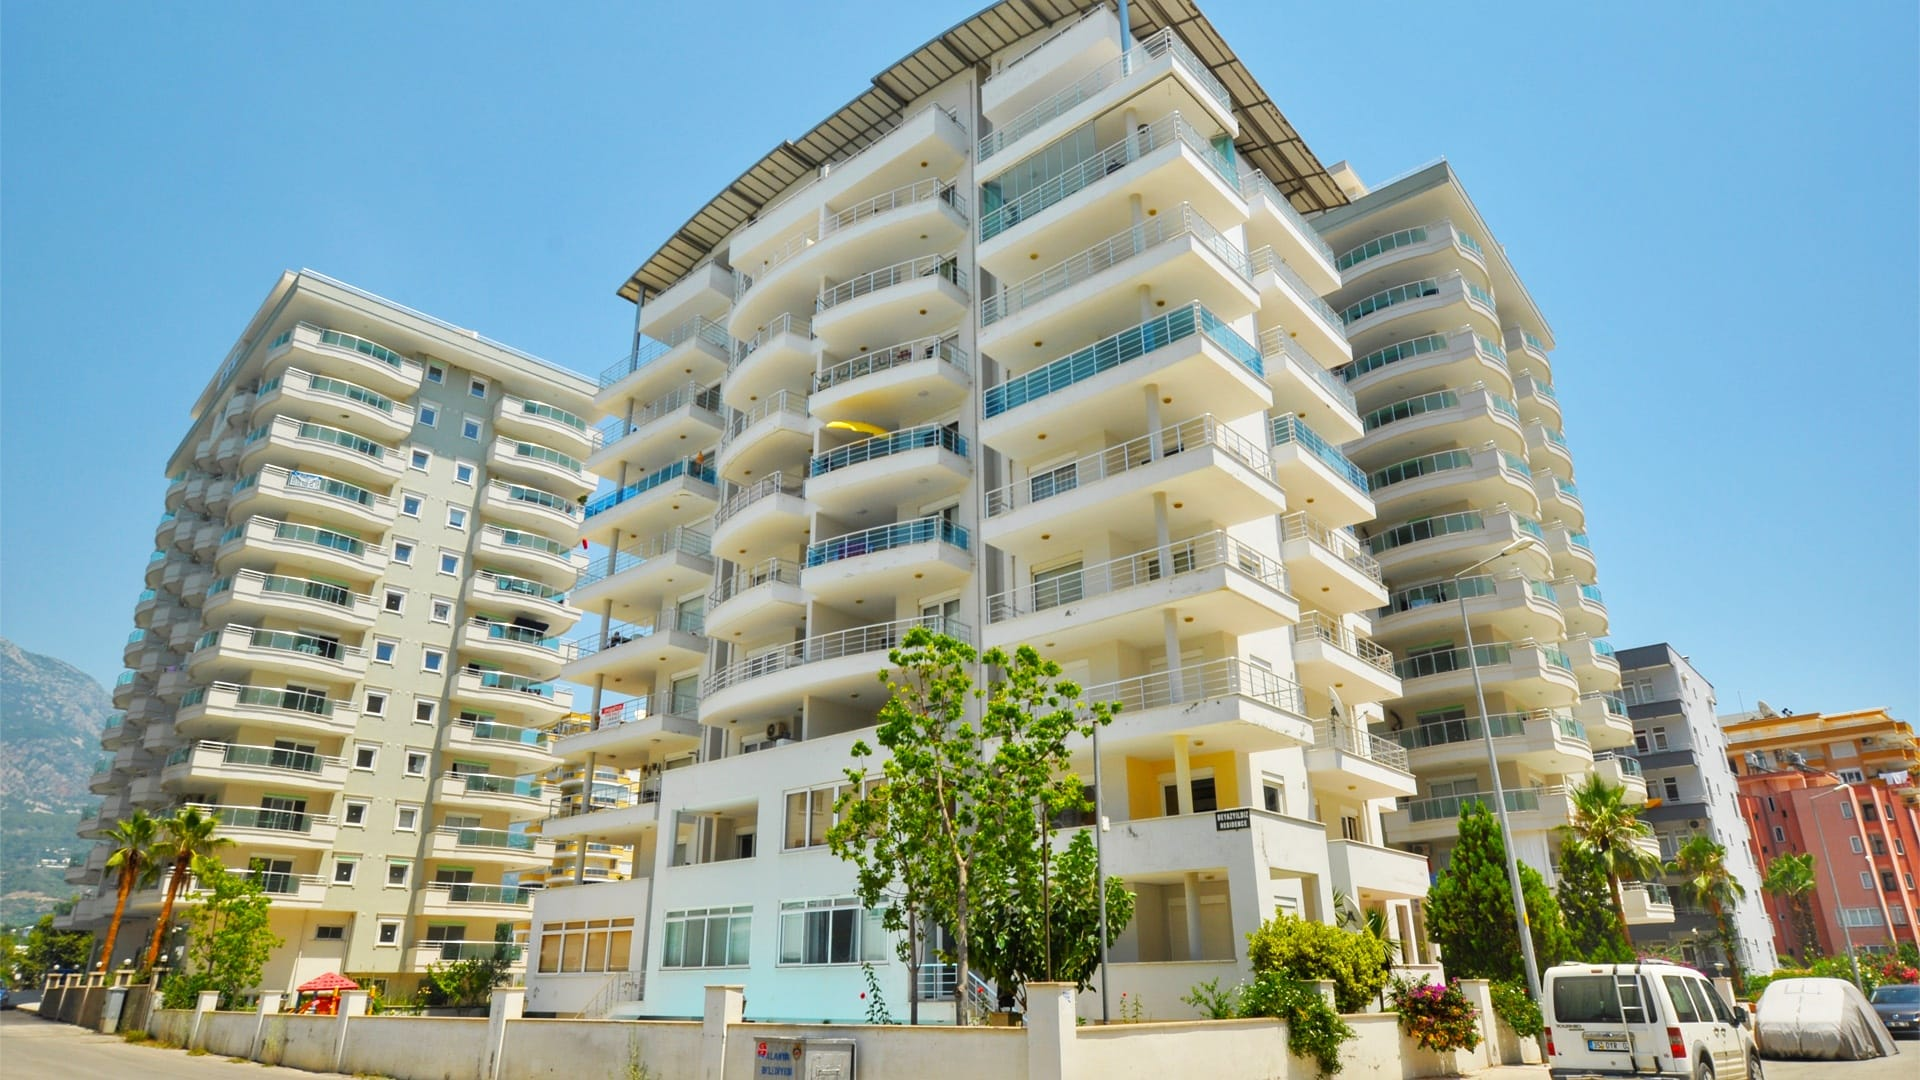 Penthouse Apartment Alanya Cheap in Offer 53000 Euros